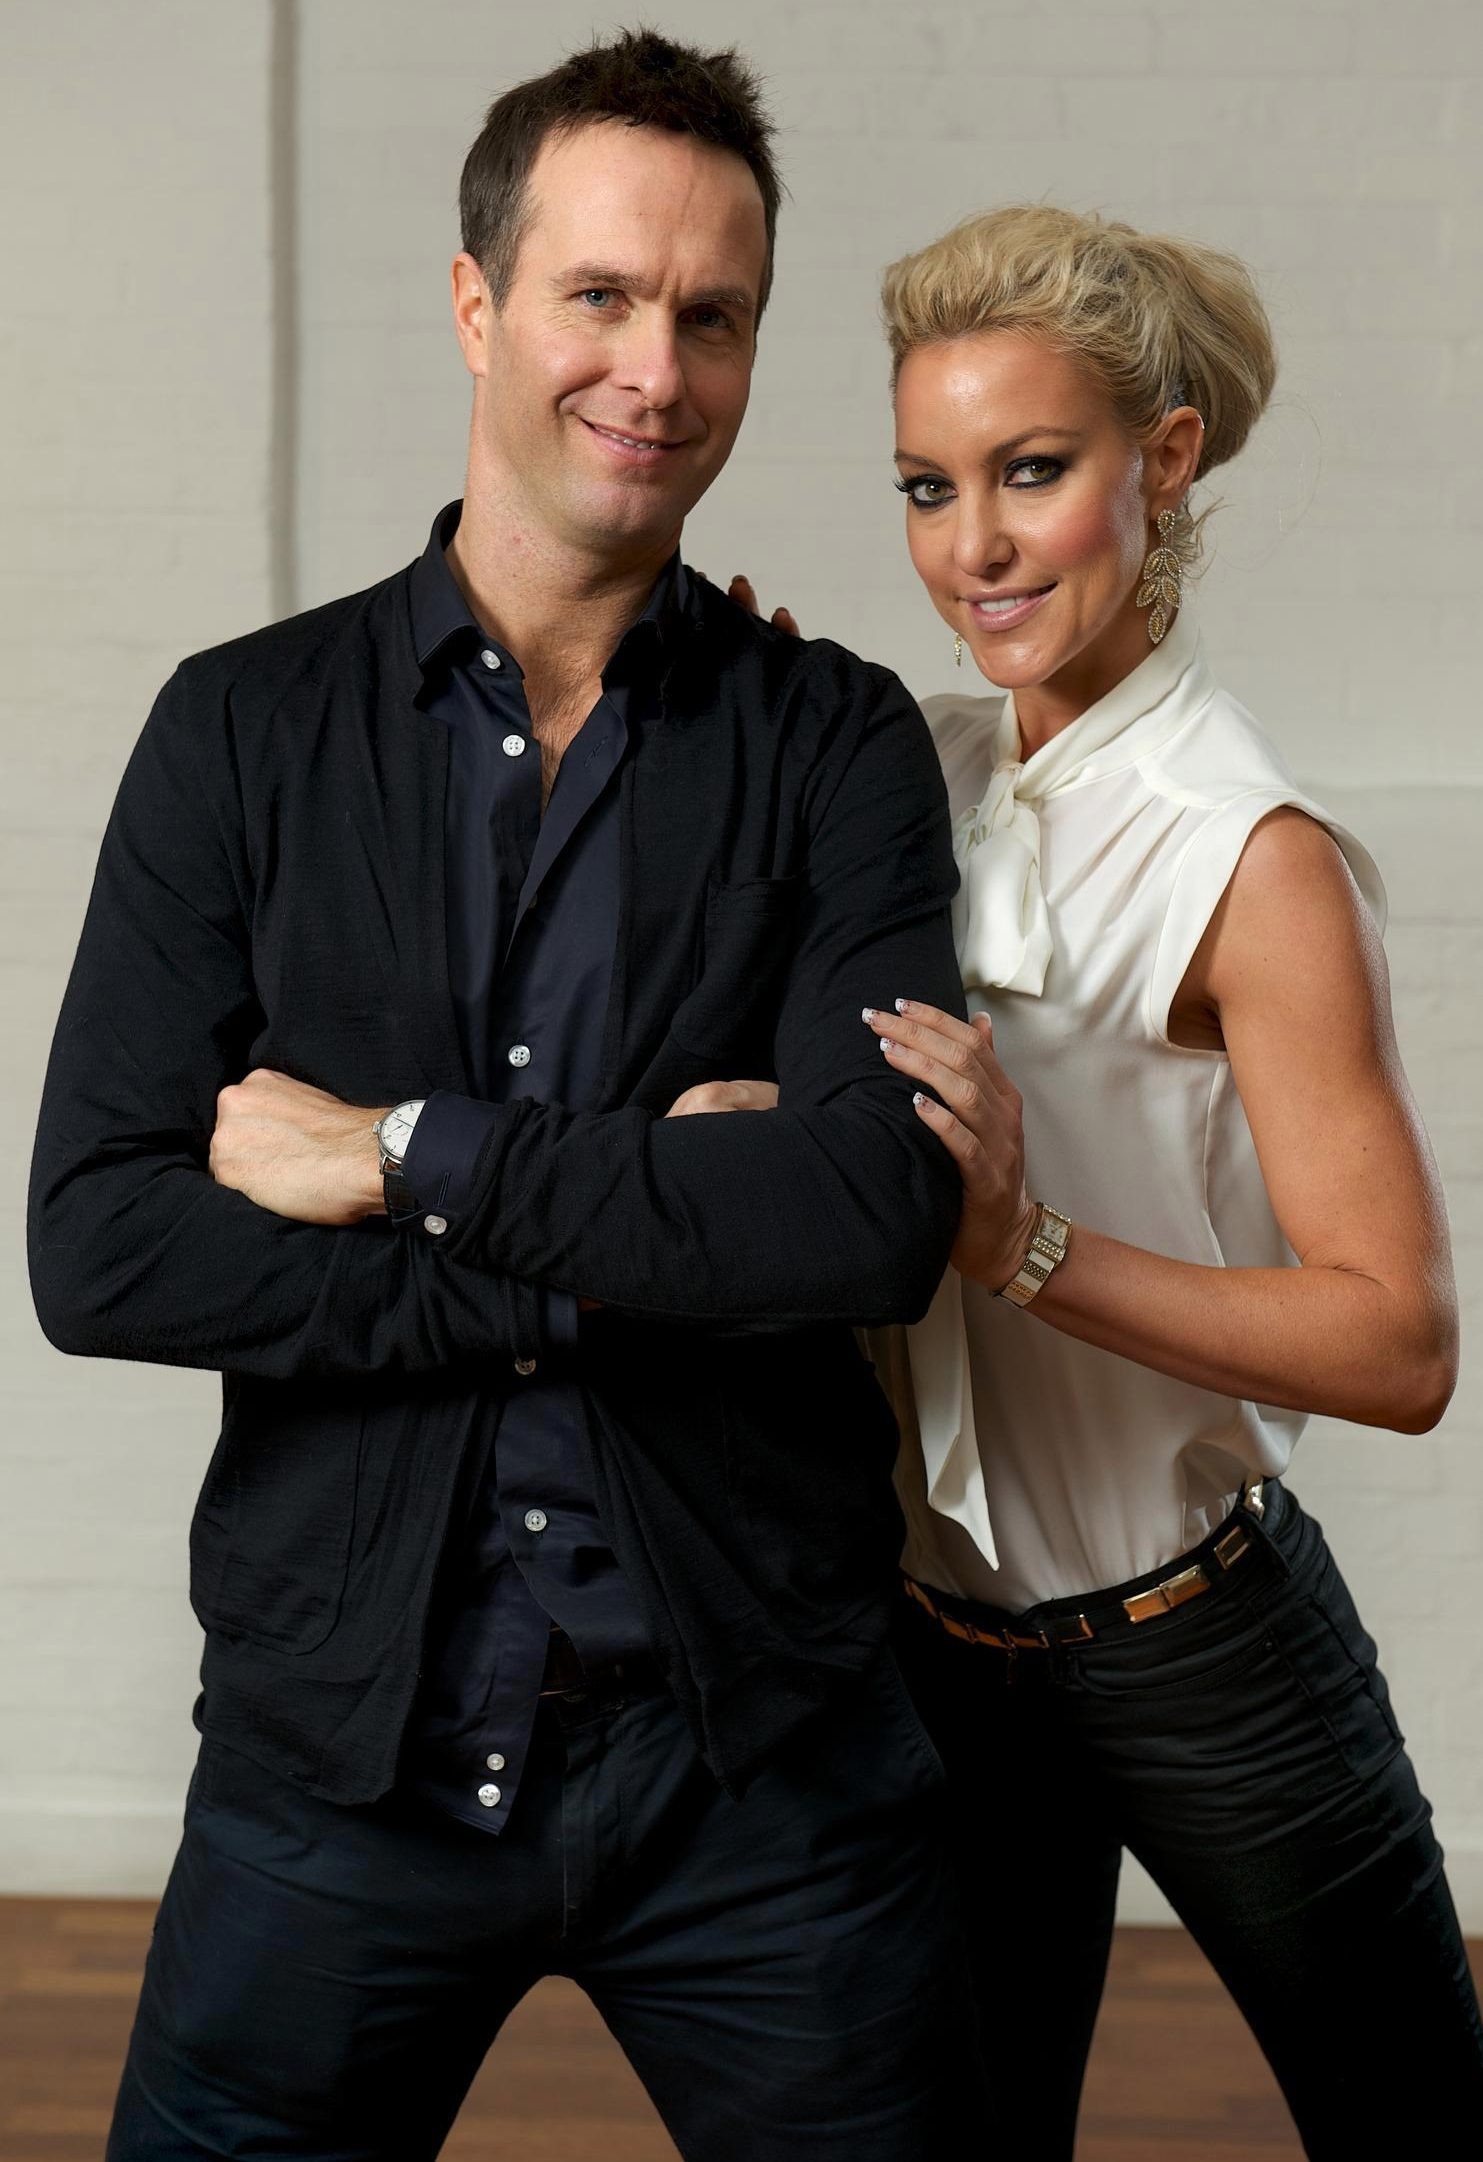 Ex-England skipper Michael Vaughan appeared in the 2012 Stricly line-up with dance partner Natalie Lowe